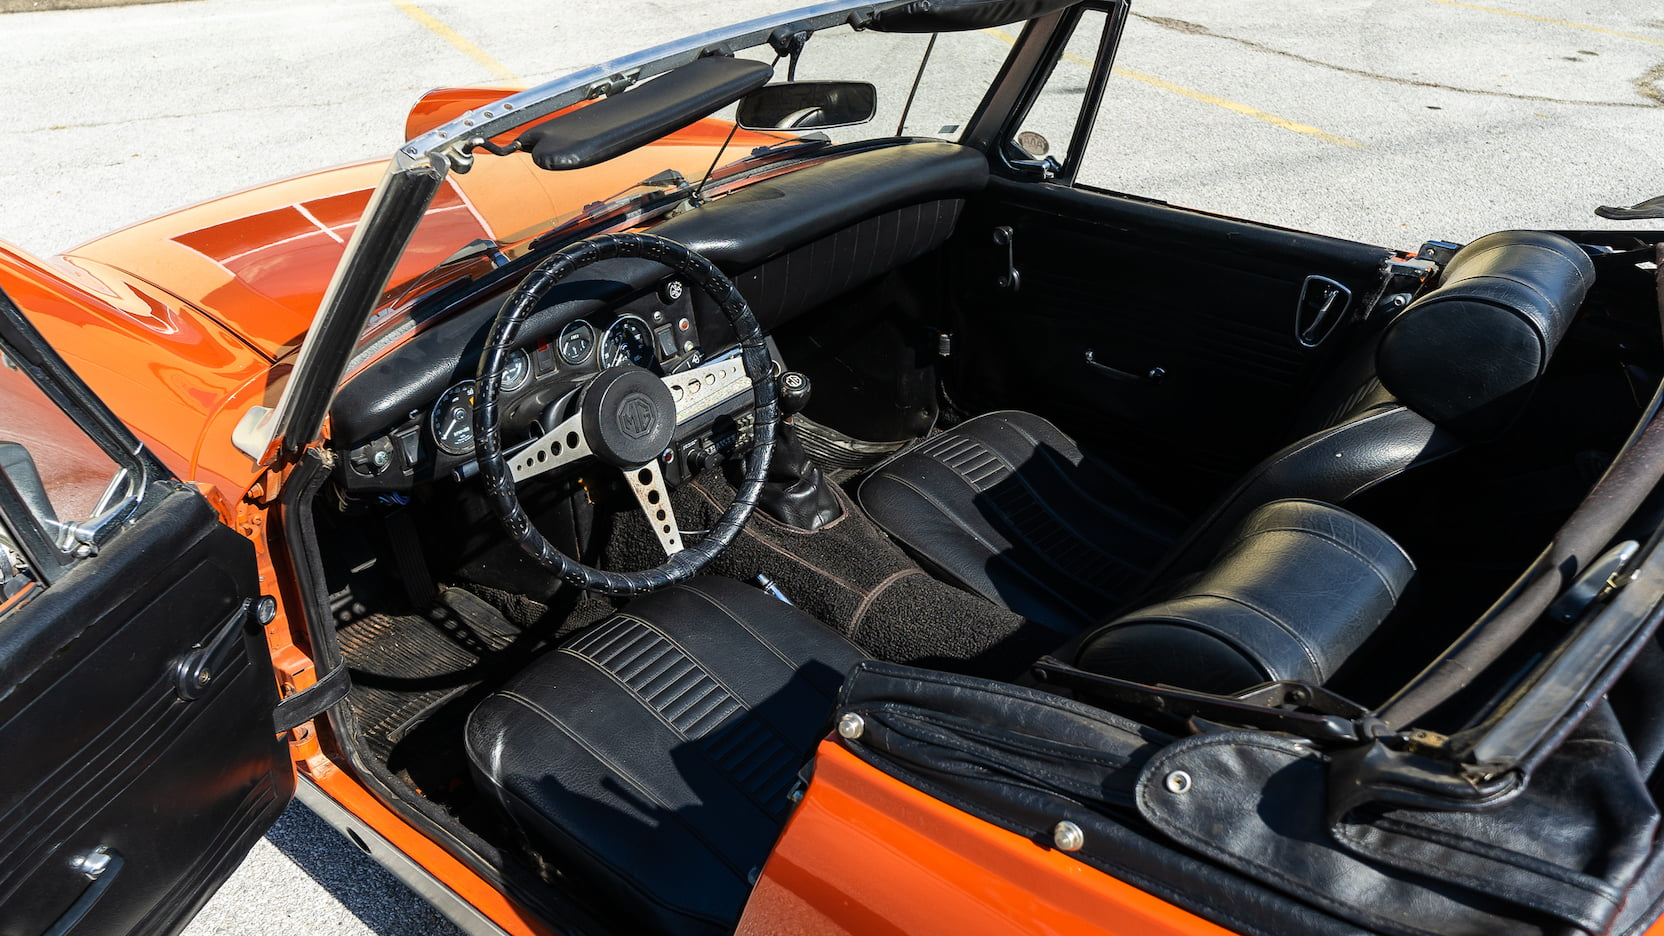 1971 MG Midget interior